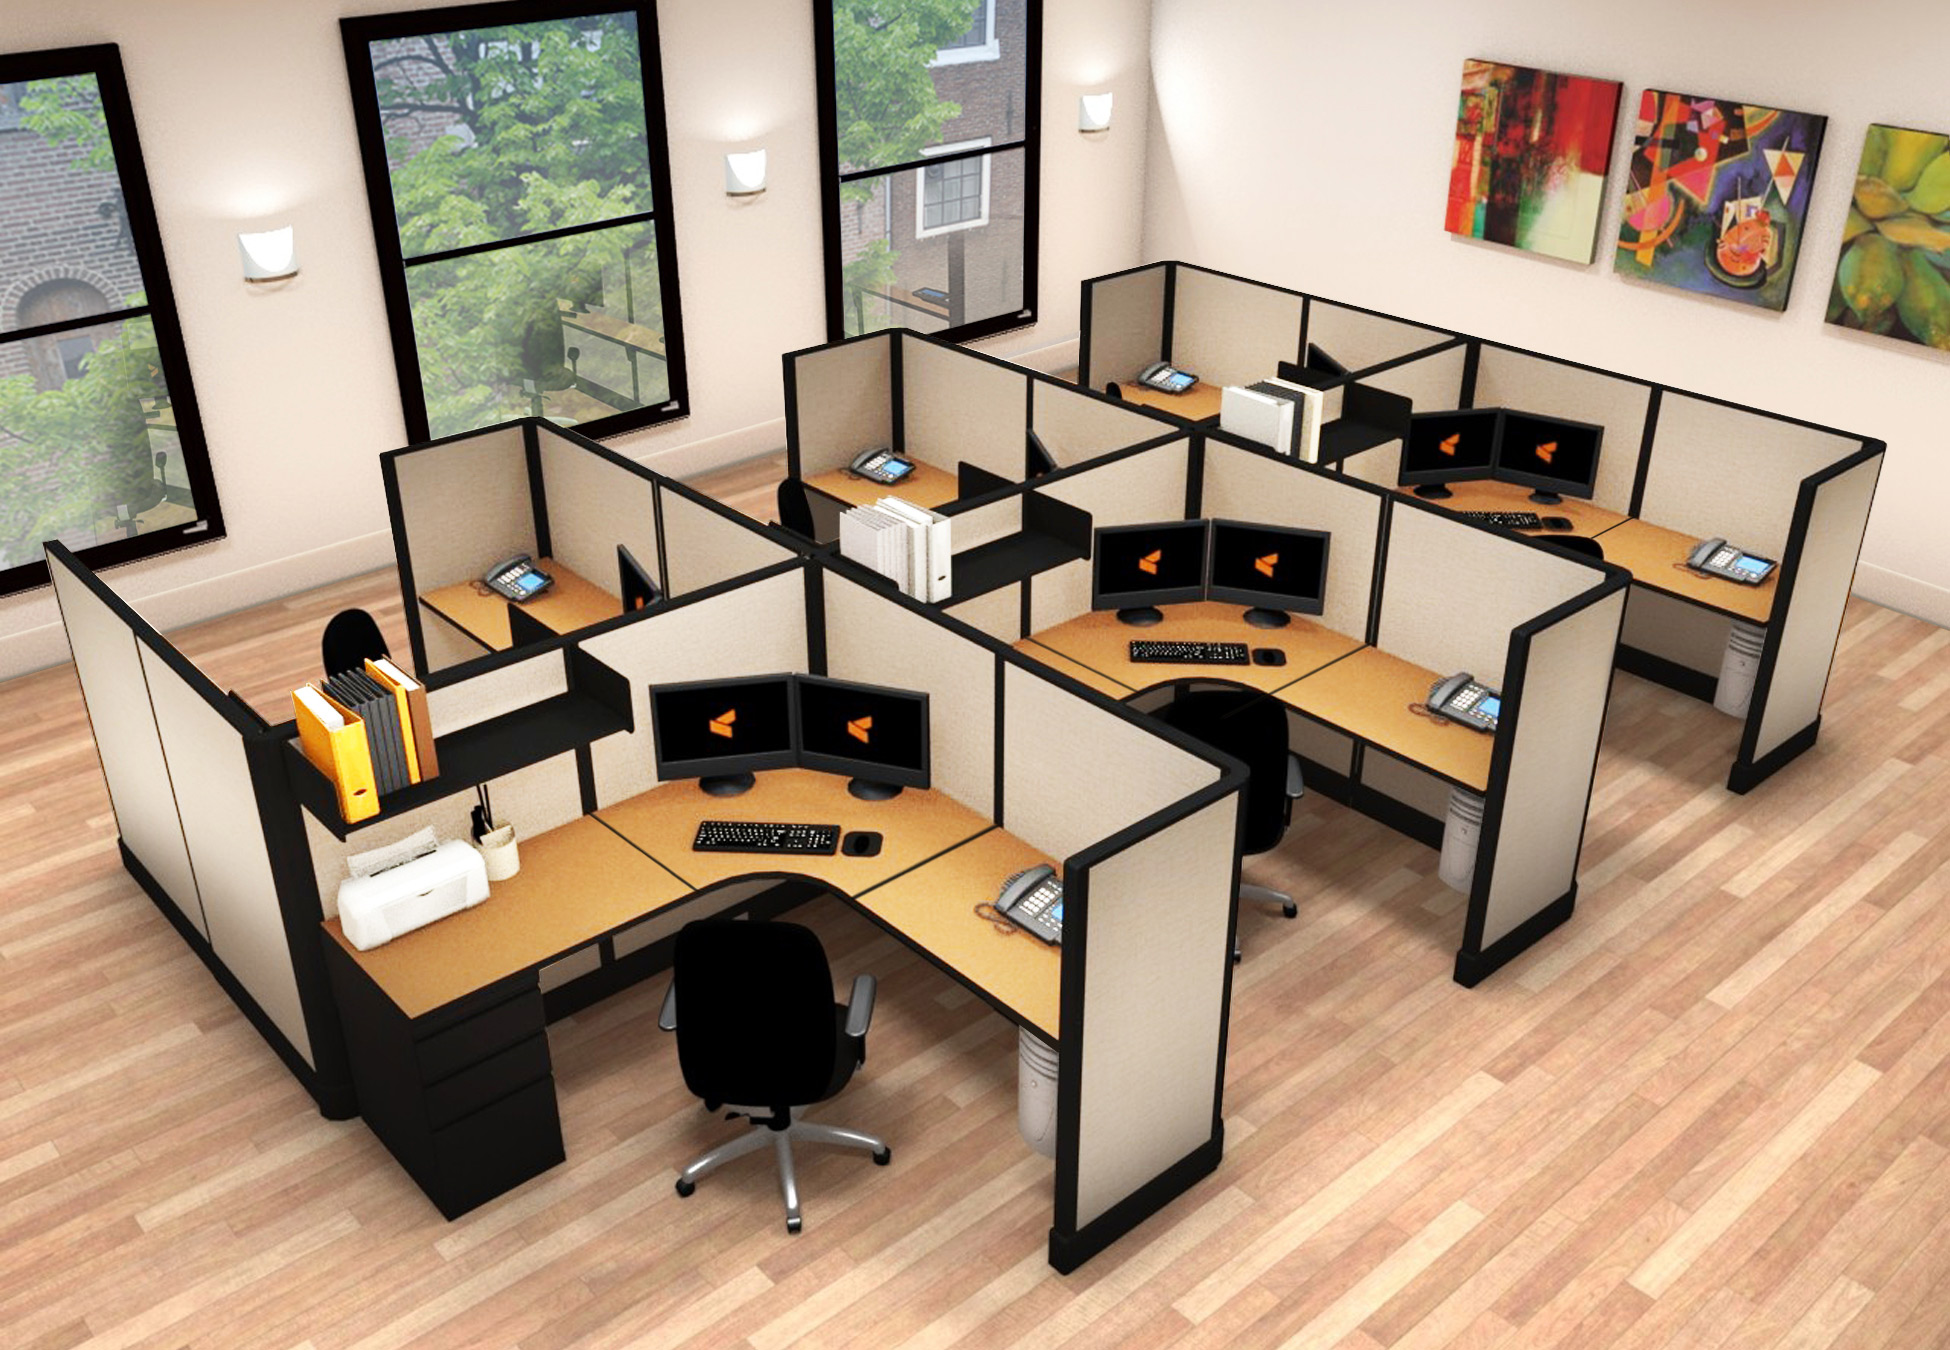 6x6 Average Cubicle Size - 6 Pack Cluster